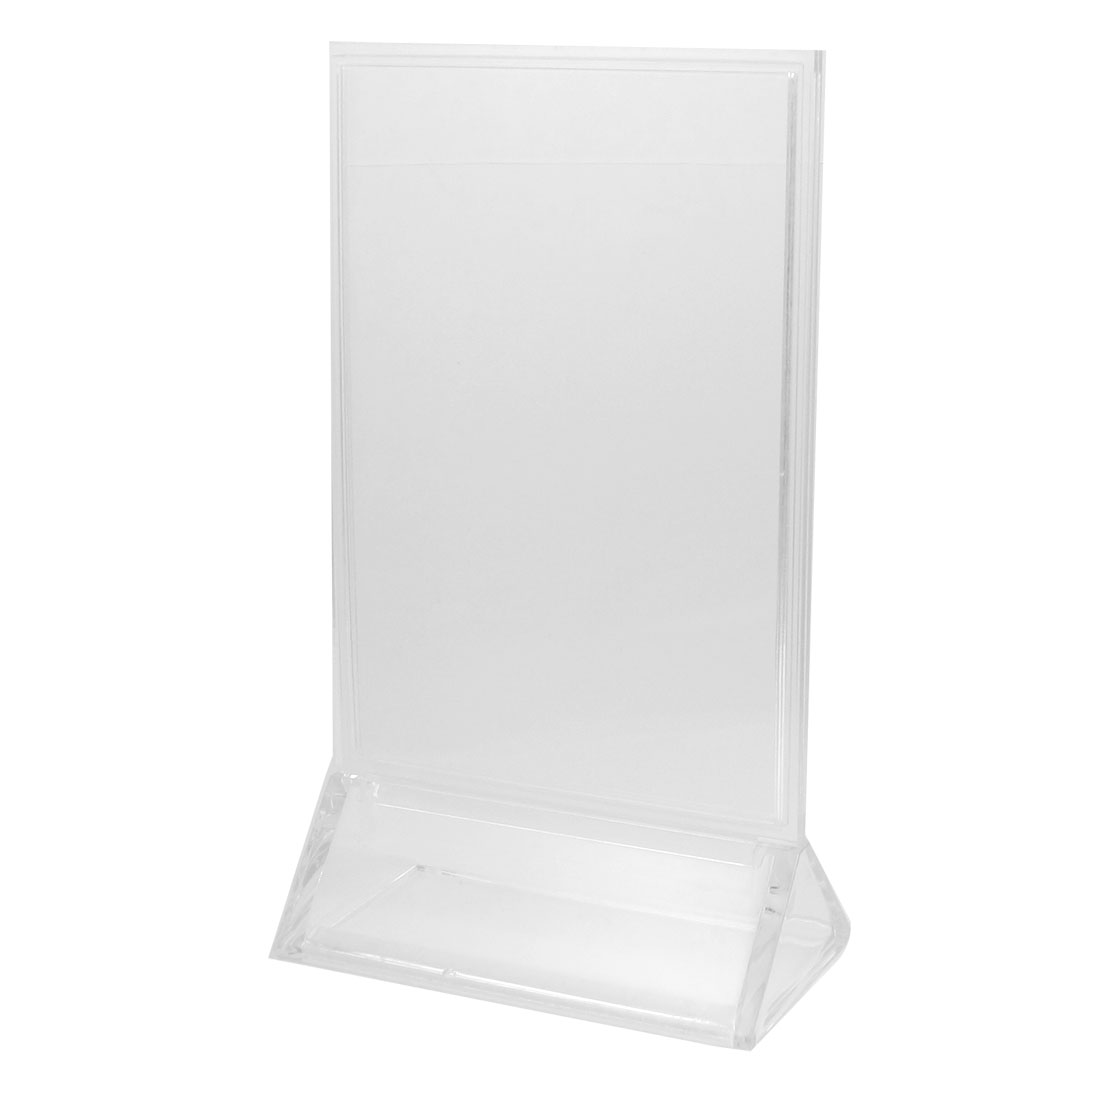 Fair Show Clear Detachable Plastic Table Display Holder 10cm x 15cm